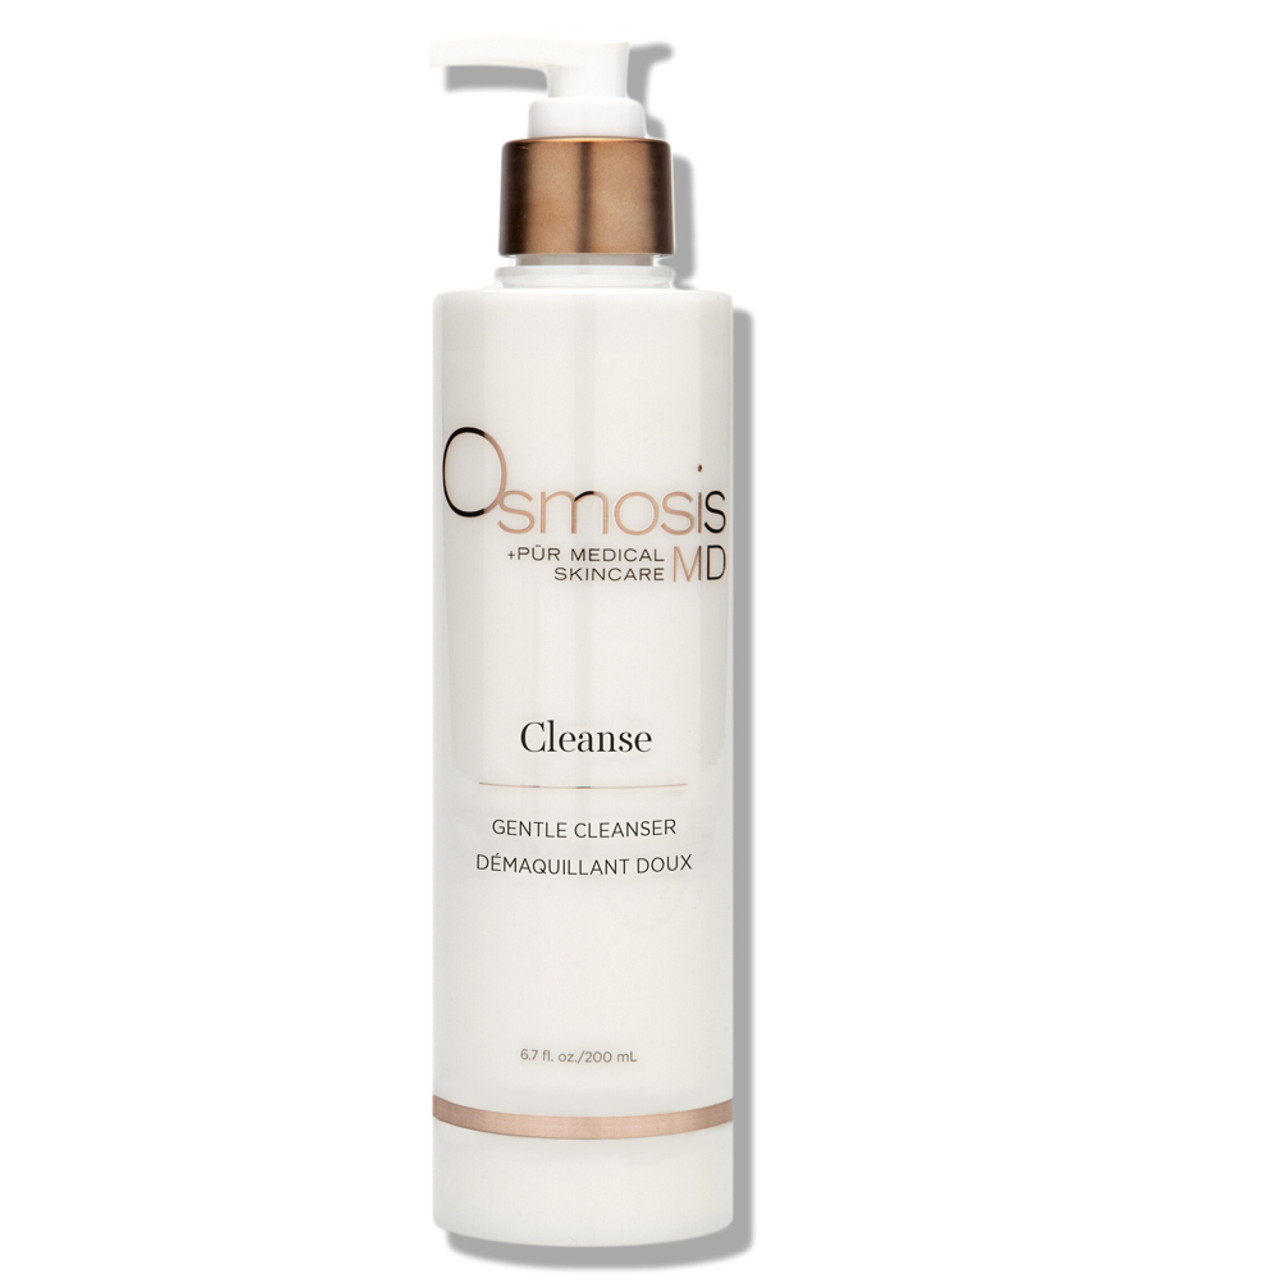 Osmosis +Skincare MD Cleanse - Gentle Cleanser BeautifiedYou.com